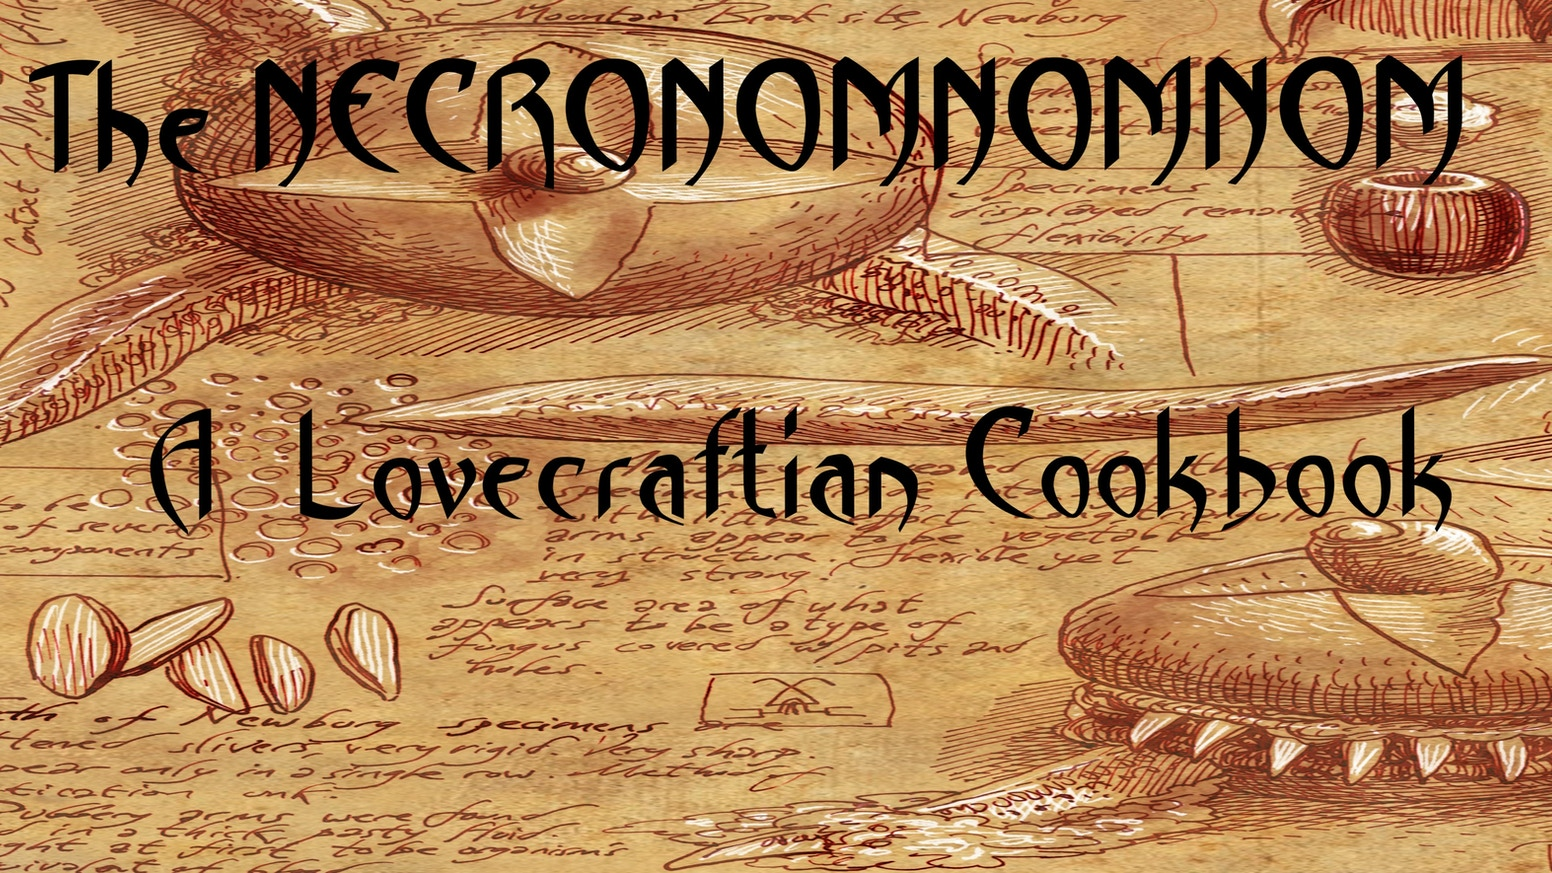 Ever wondered if you could combine Lovecraftian horror and fine cuisine, while keeping your sanity? Then this is the cookbook for you!